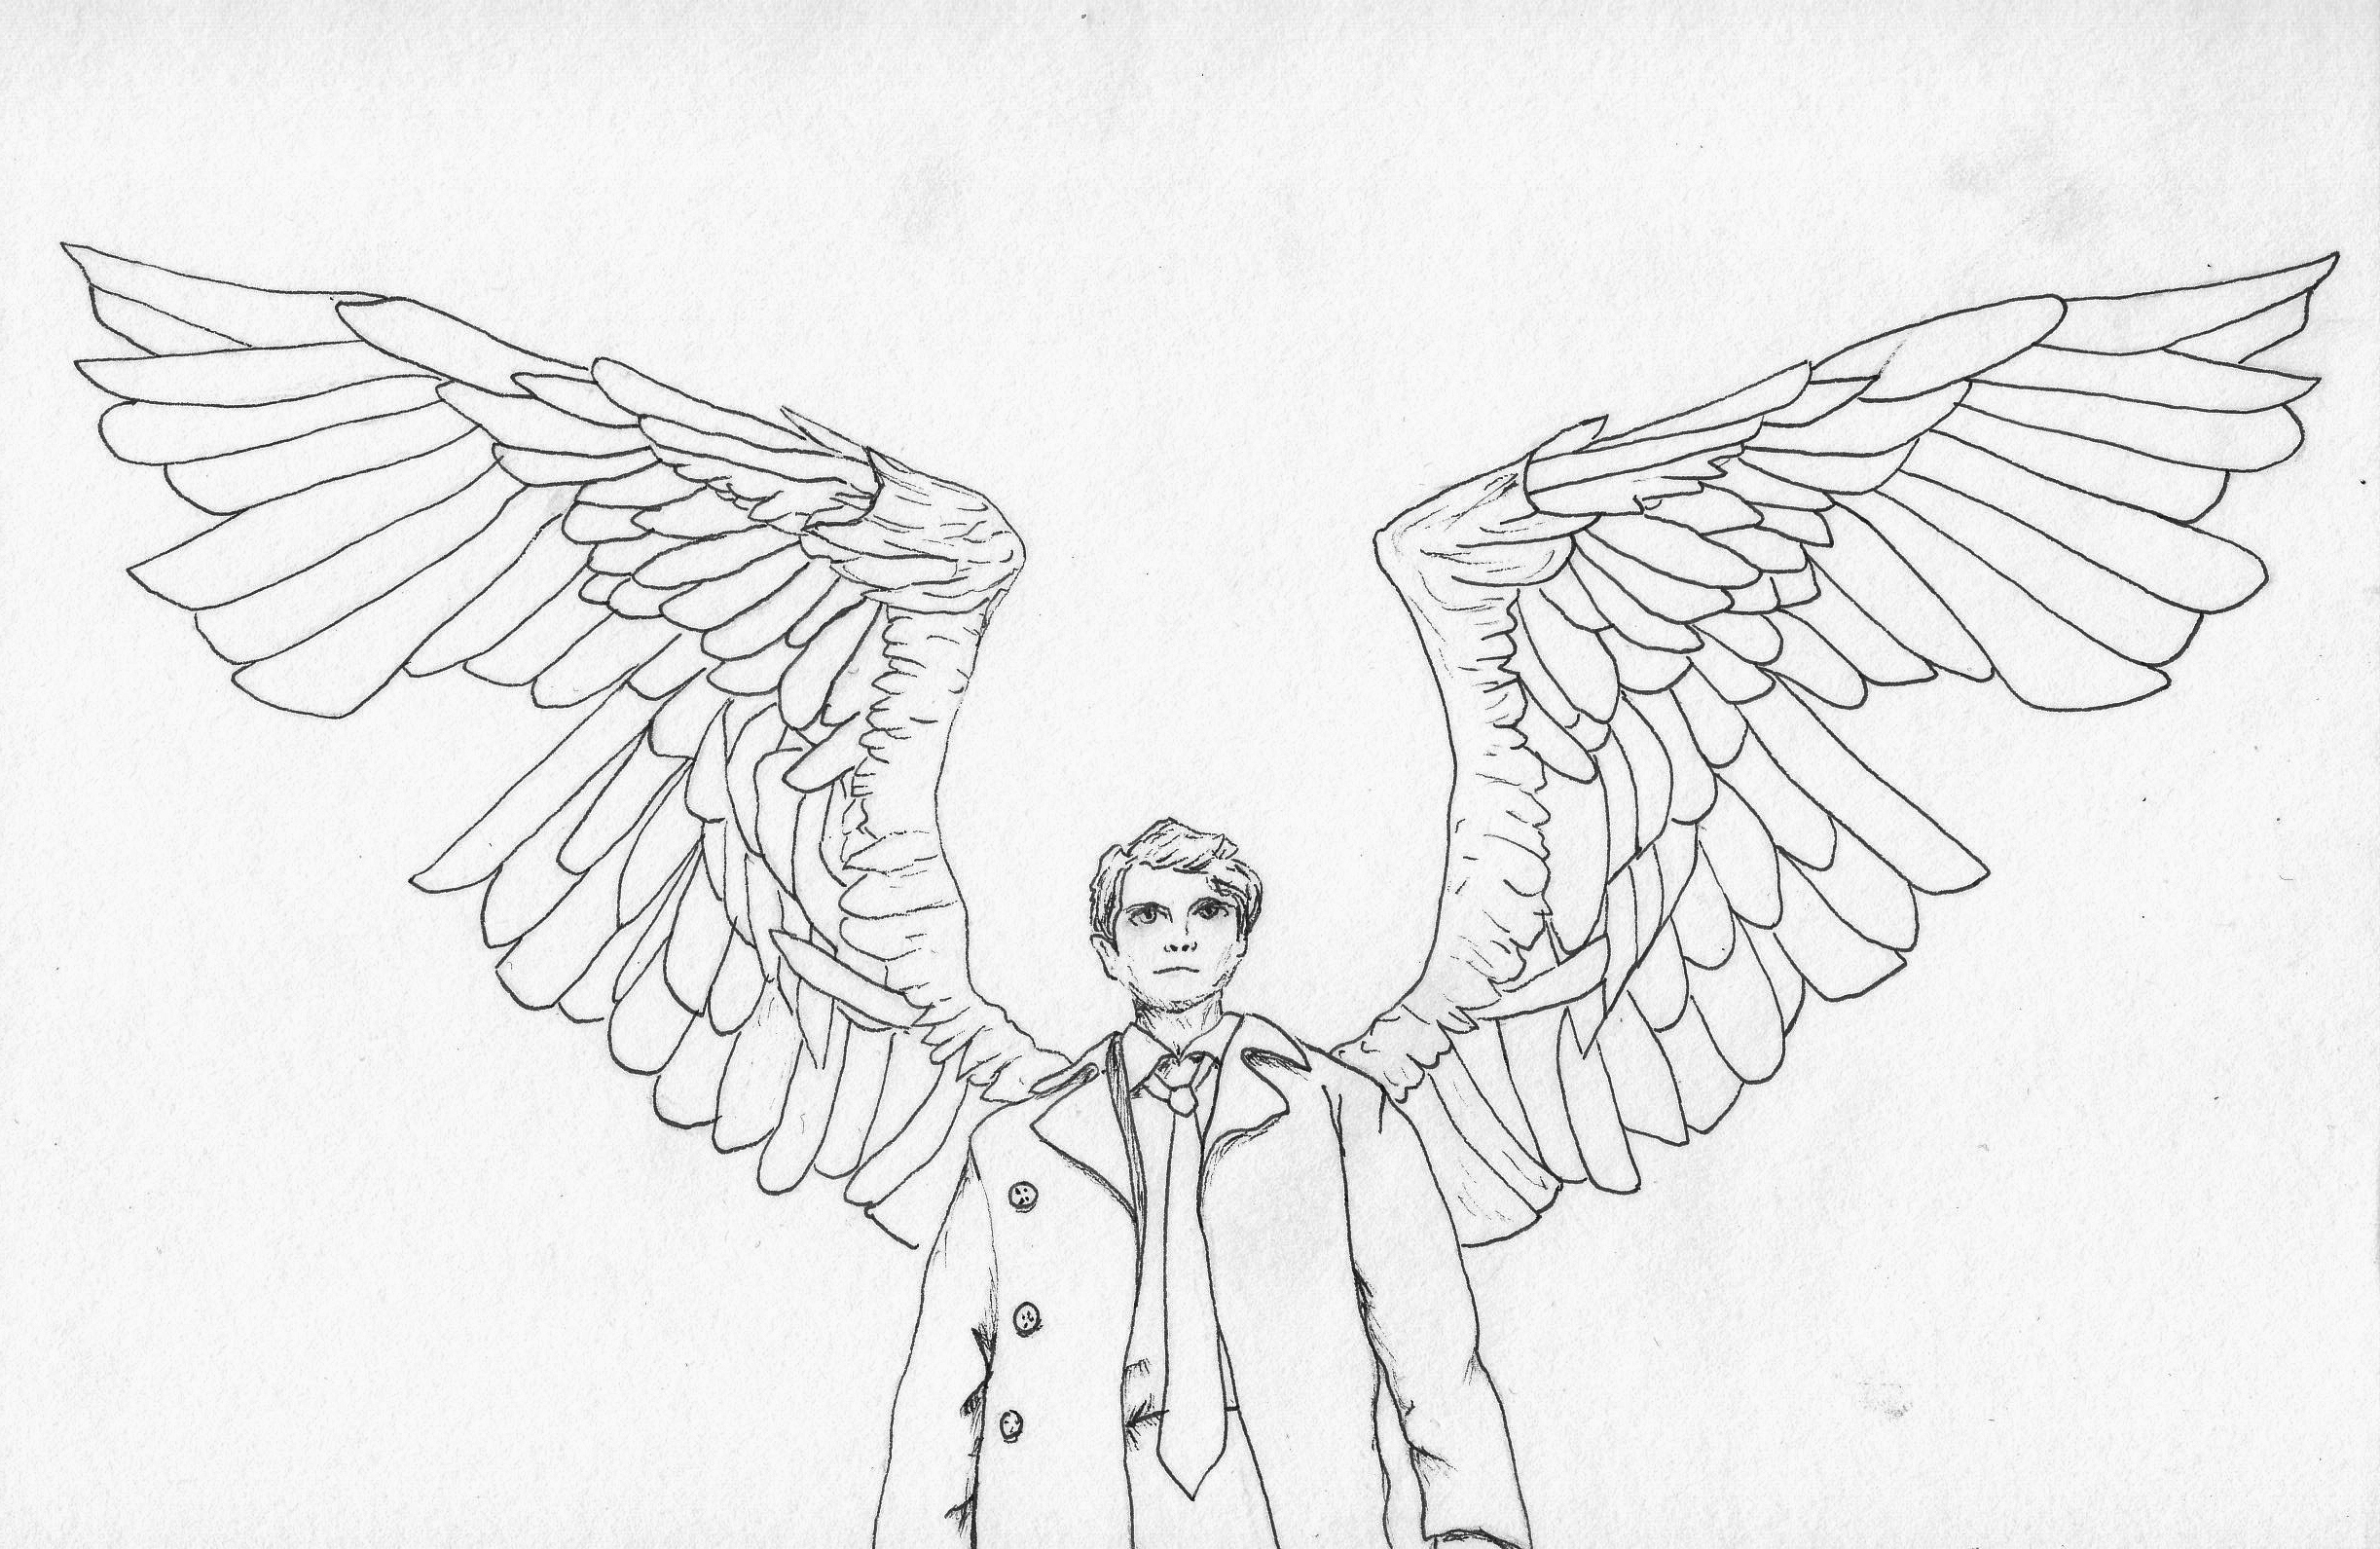 Drawing Lines R : Castiel line drawing by r ry the man on deviantart